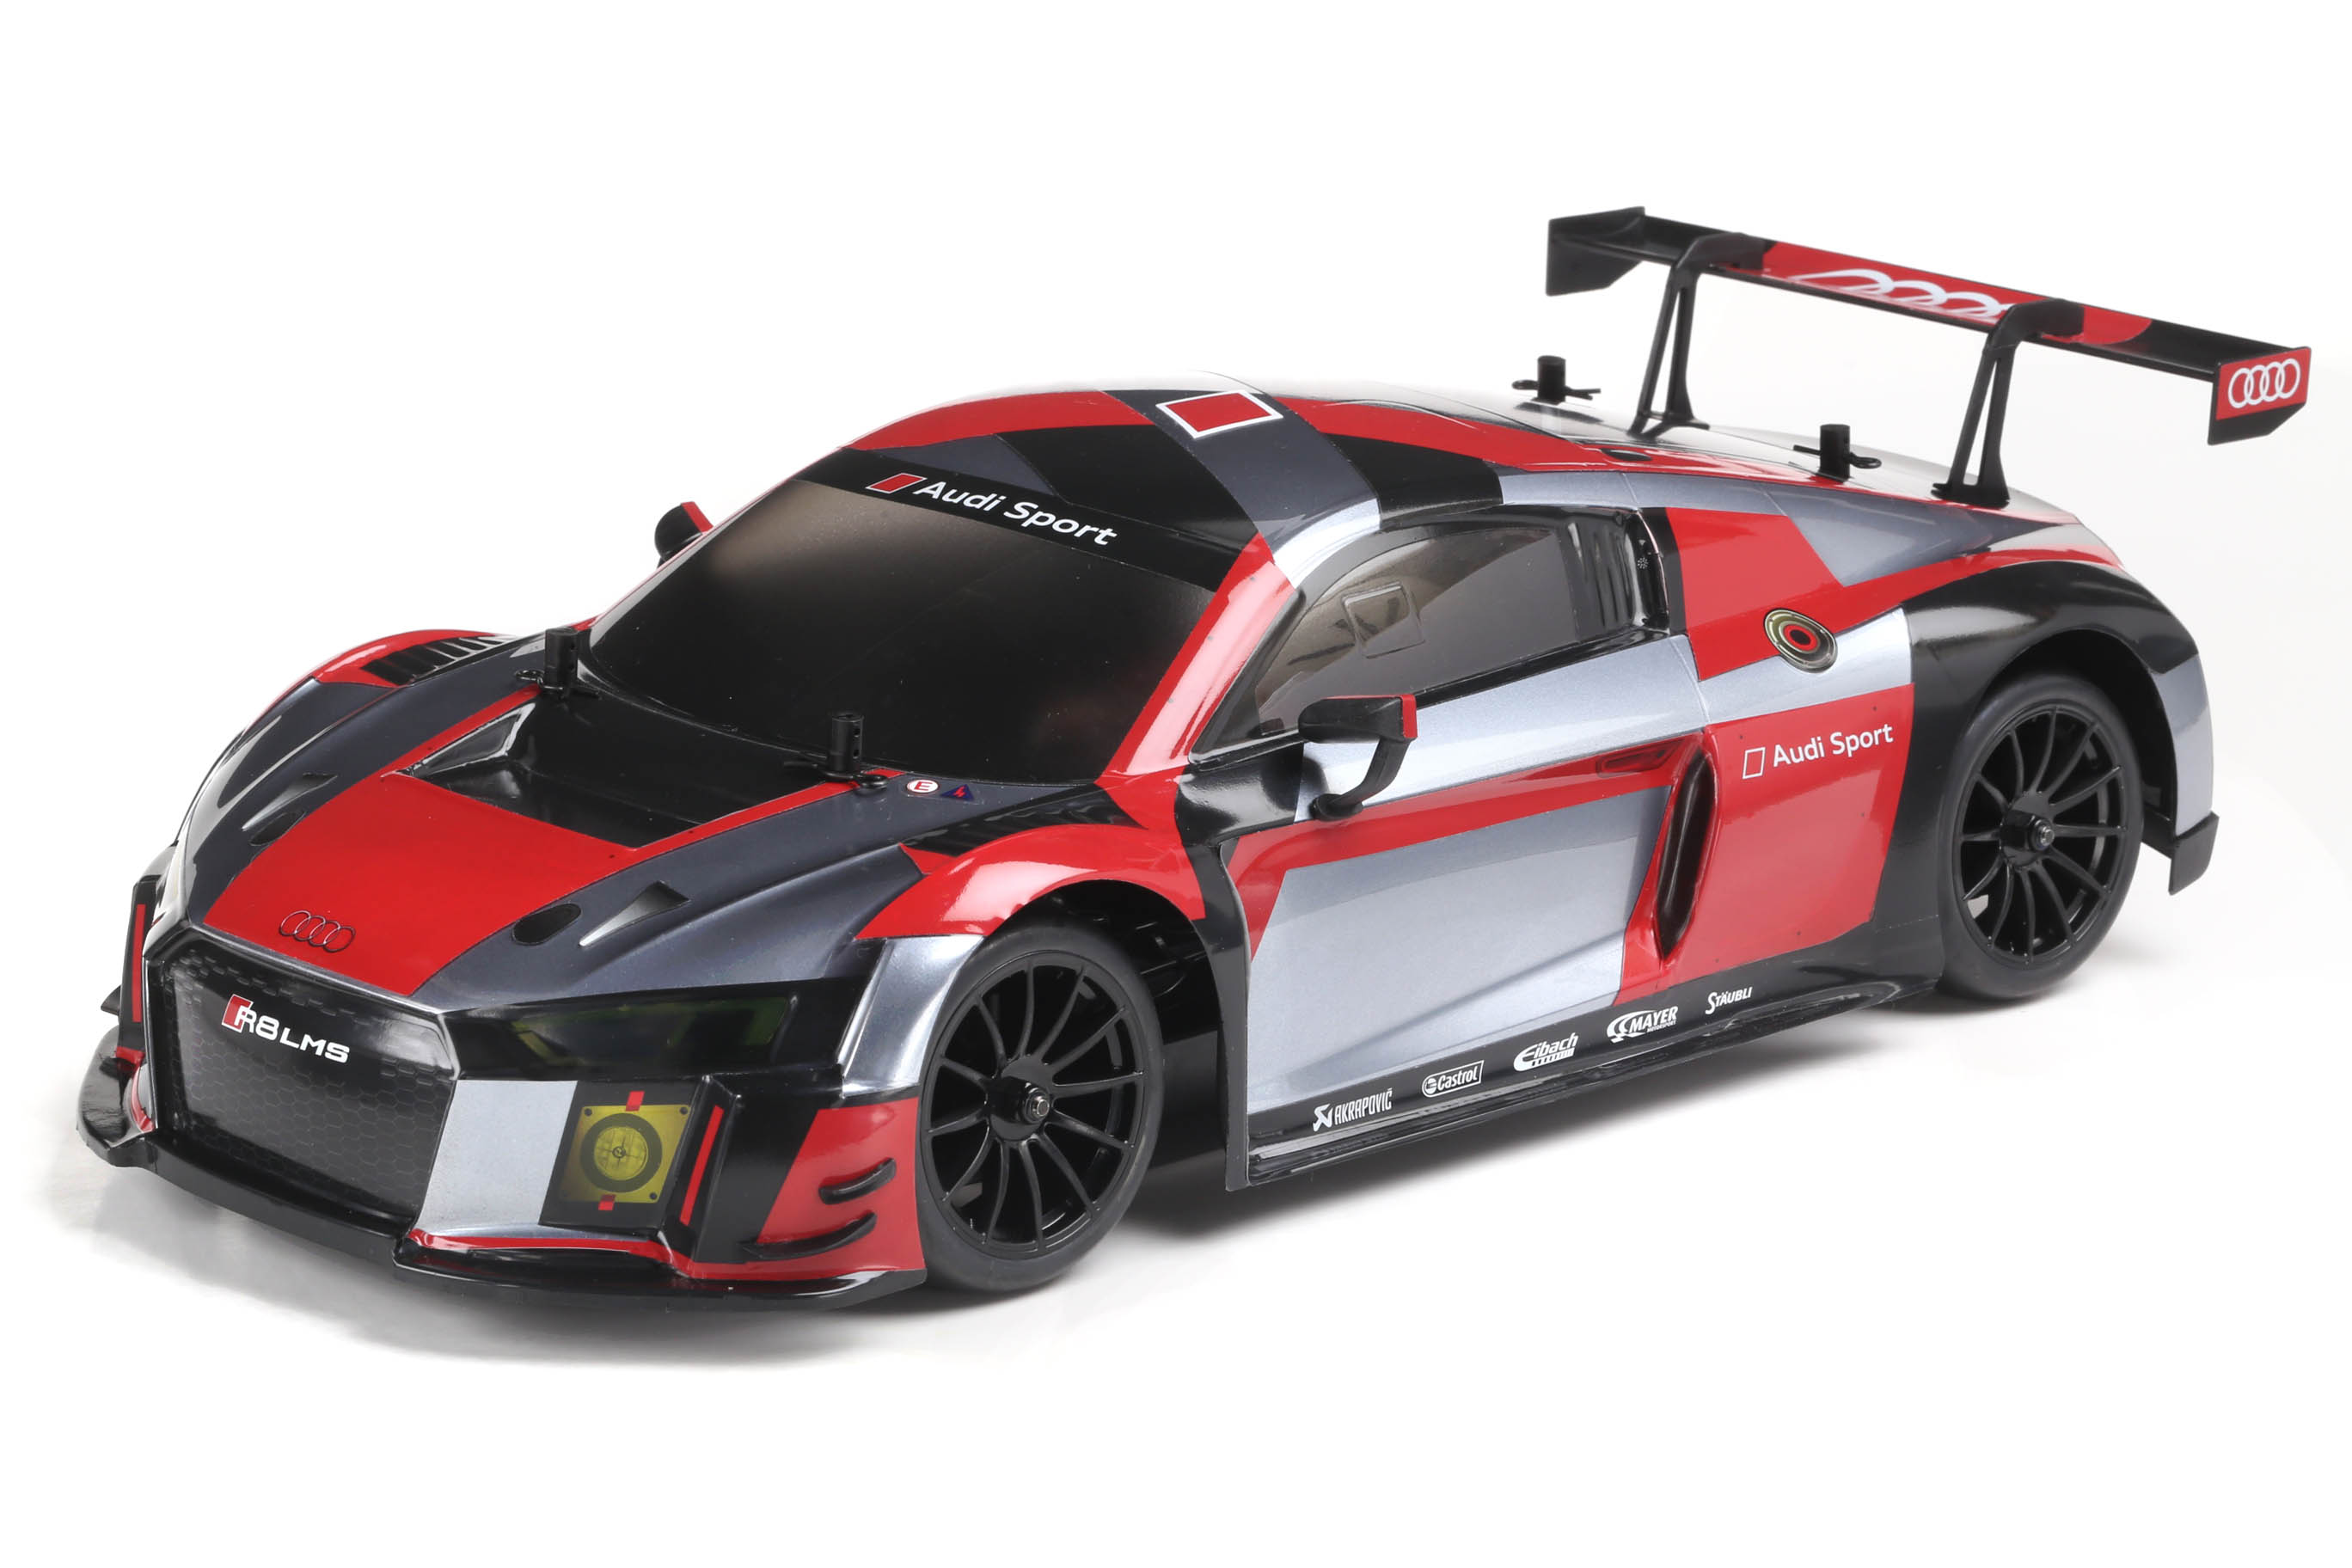 Take the Lead with Carisma's Audi R8 LMS RTR